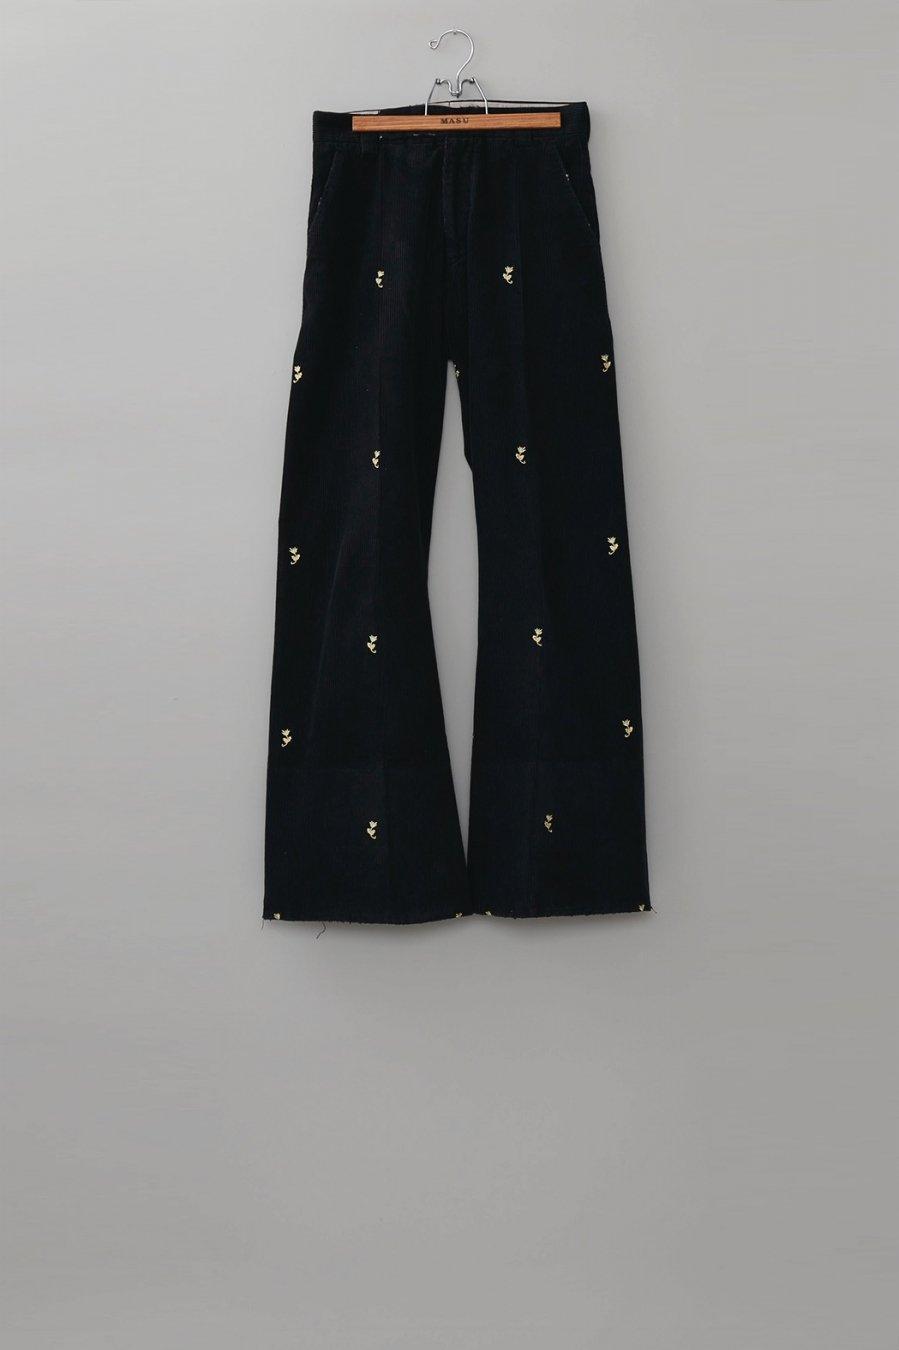 MASU  SEAMLESS BELL BOTTOM TROUSERS(BLACK)<img class='new_mark_img2' src='https://img.shop-pro.jp/img/new/icons15.gif' style='border:none;display:inline;margin:0px;padding:0px;width:auto;' />